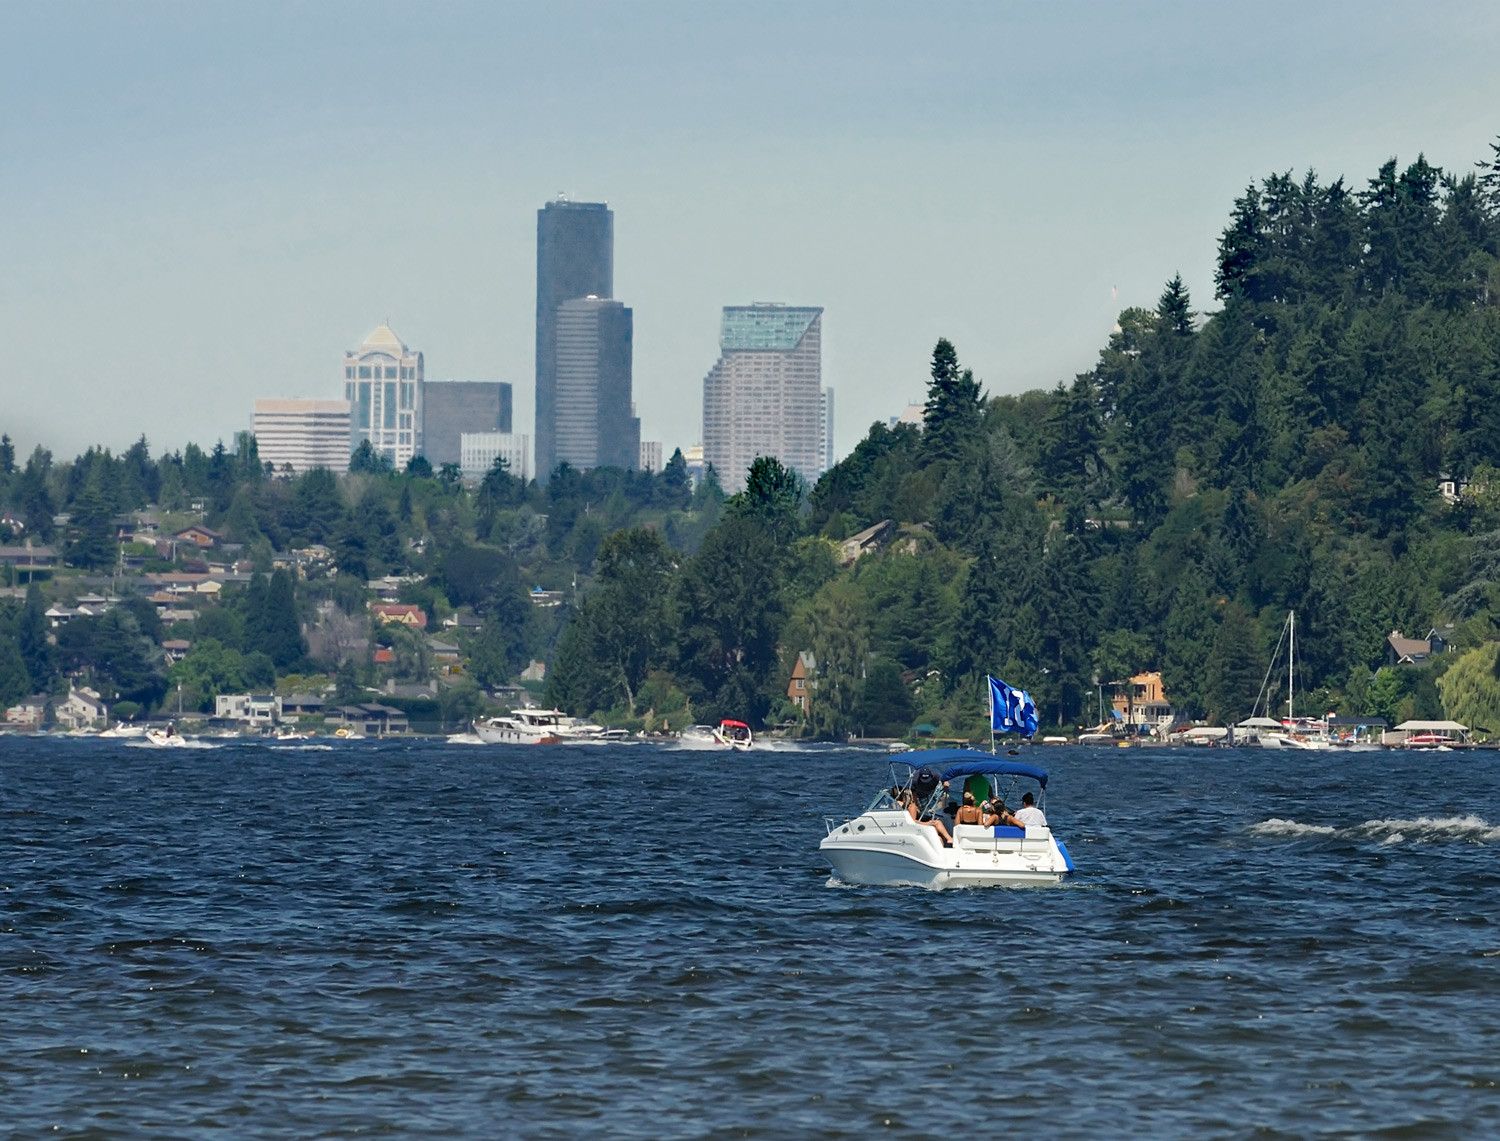 Boats on Lake Washington